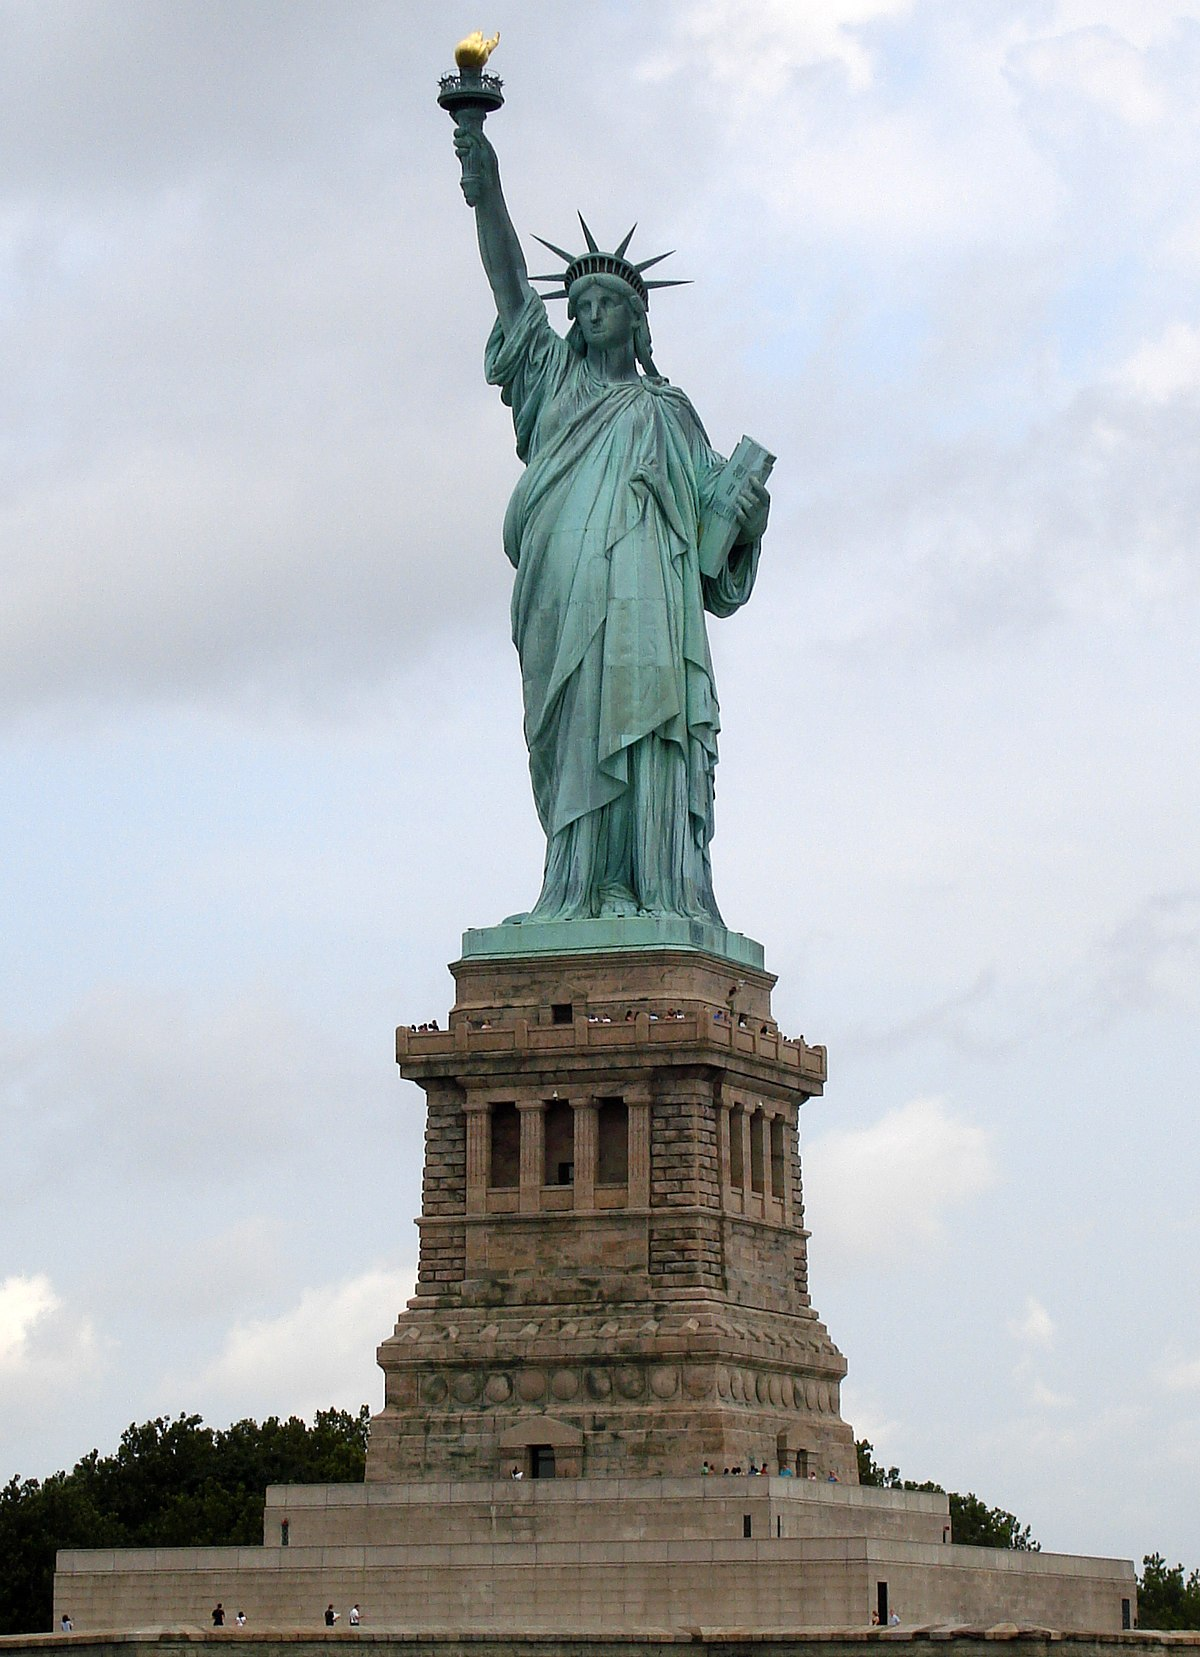 1200px-Statue_of_Liberty_7.jpg (1200×1657)